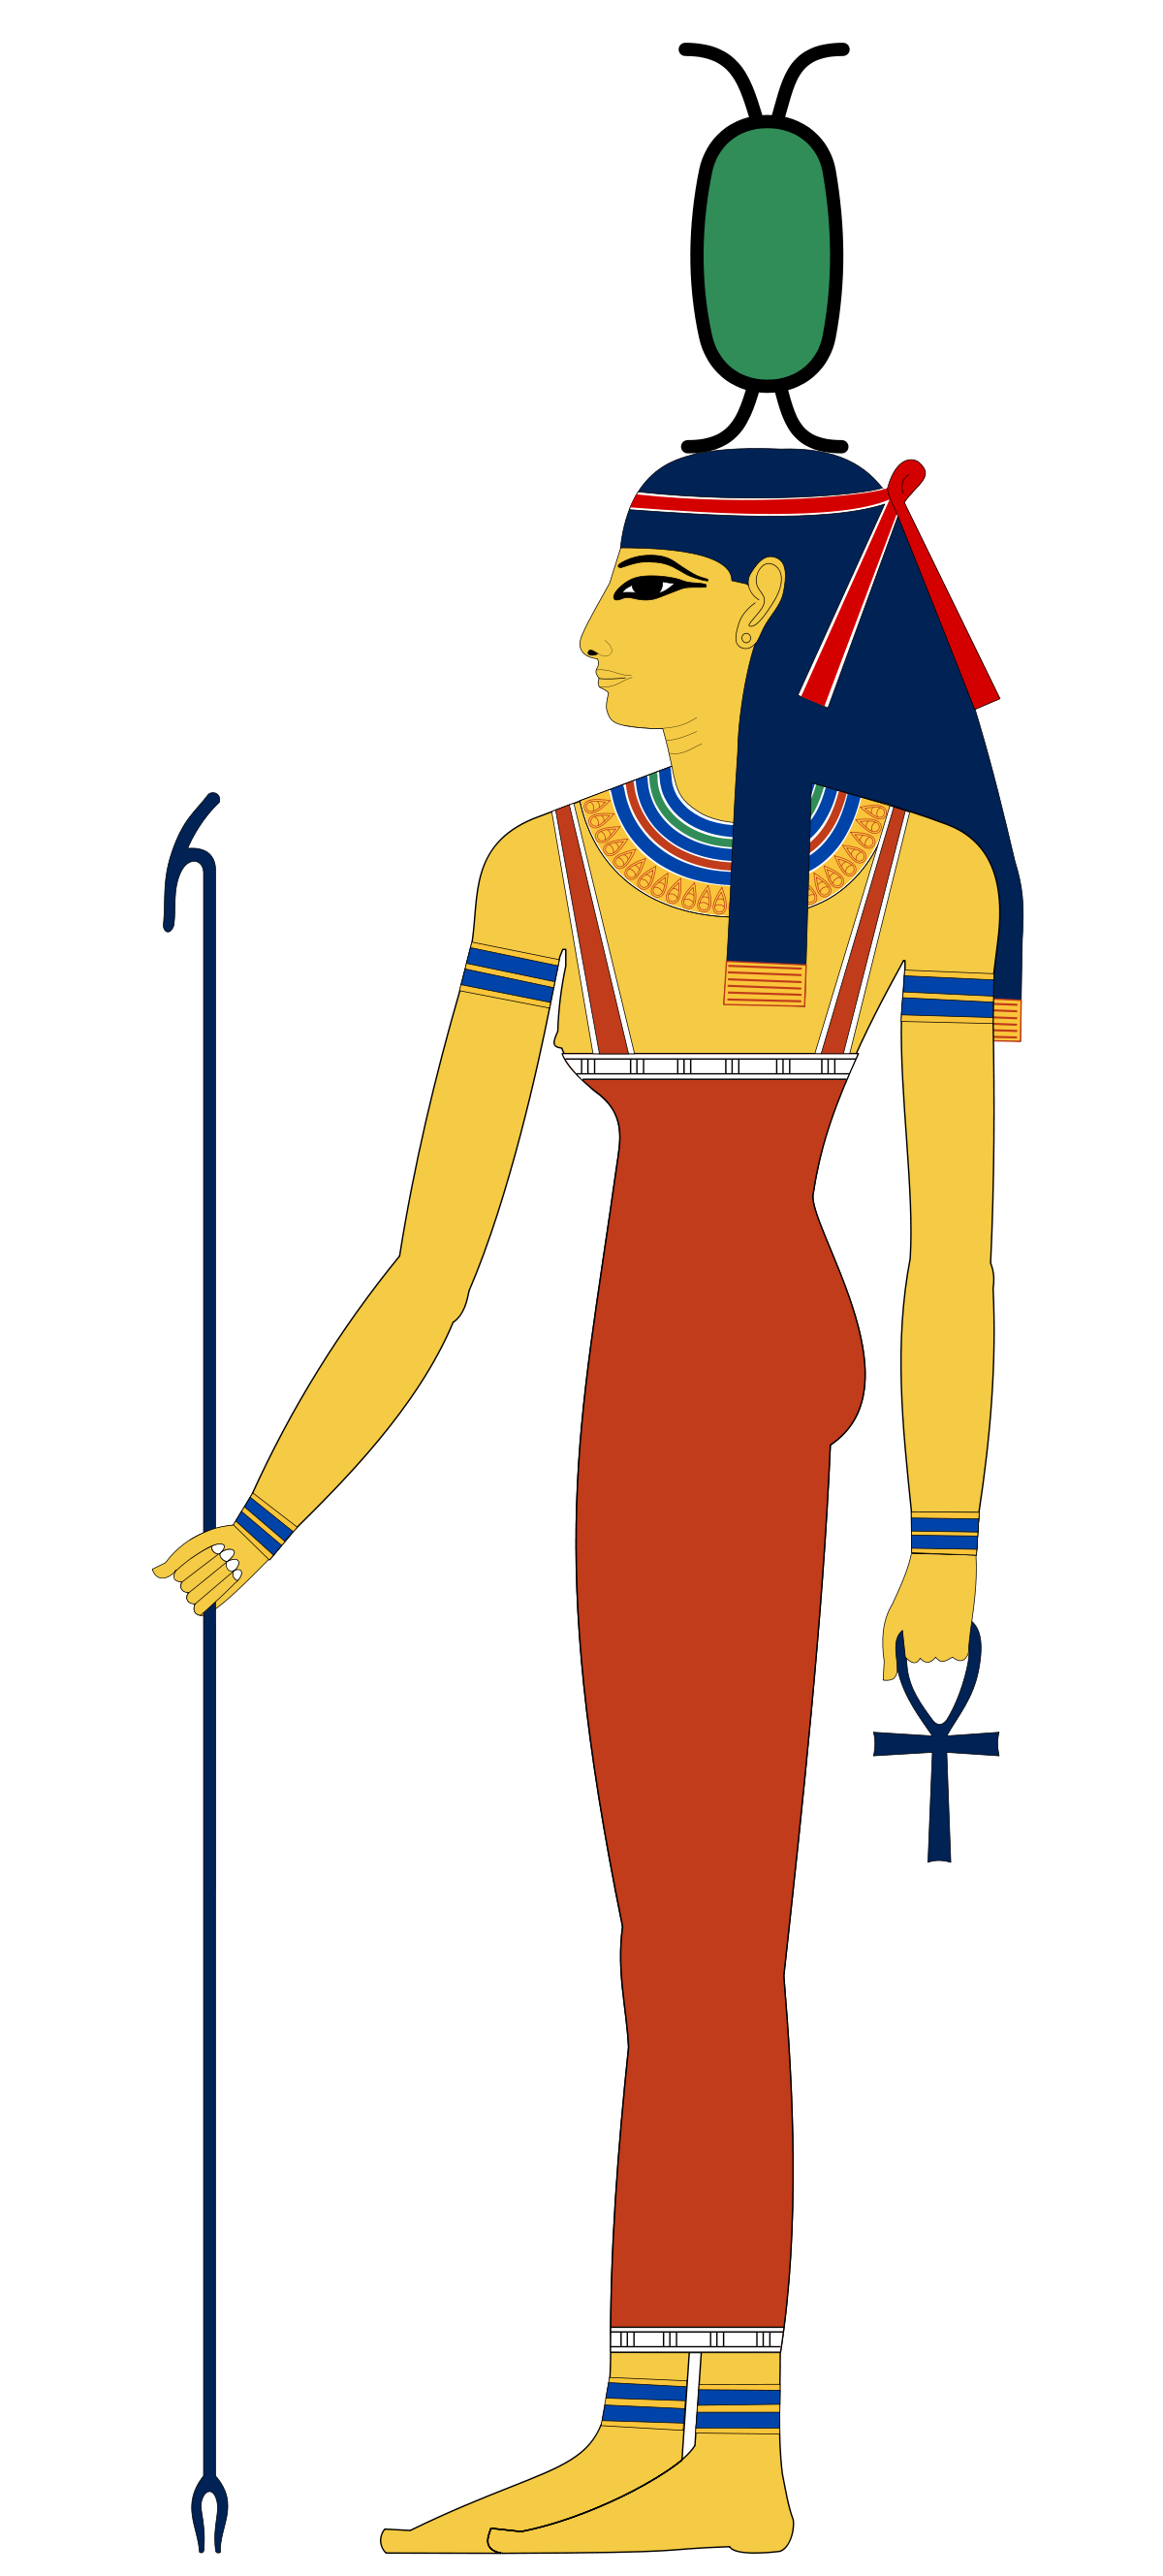 Neith wikipedia . Hunter clipart africa ancient